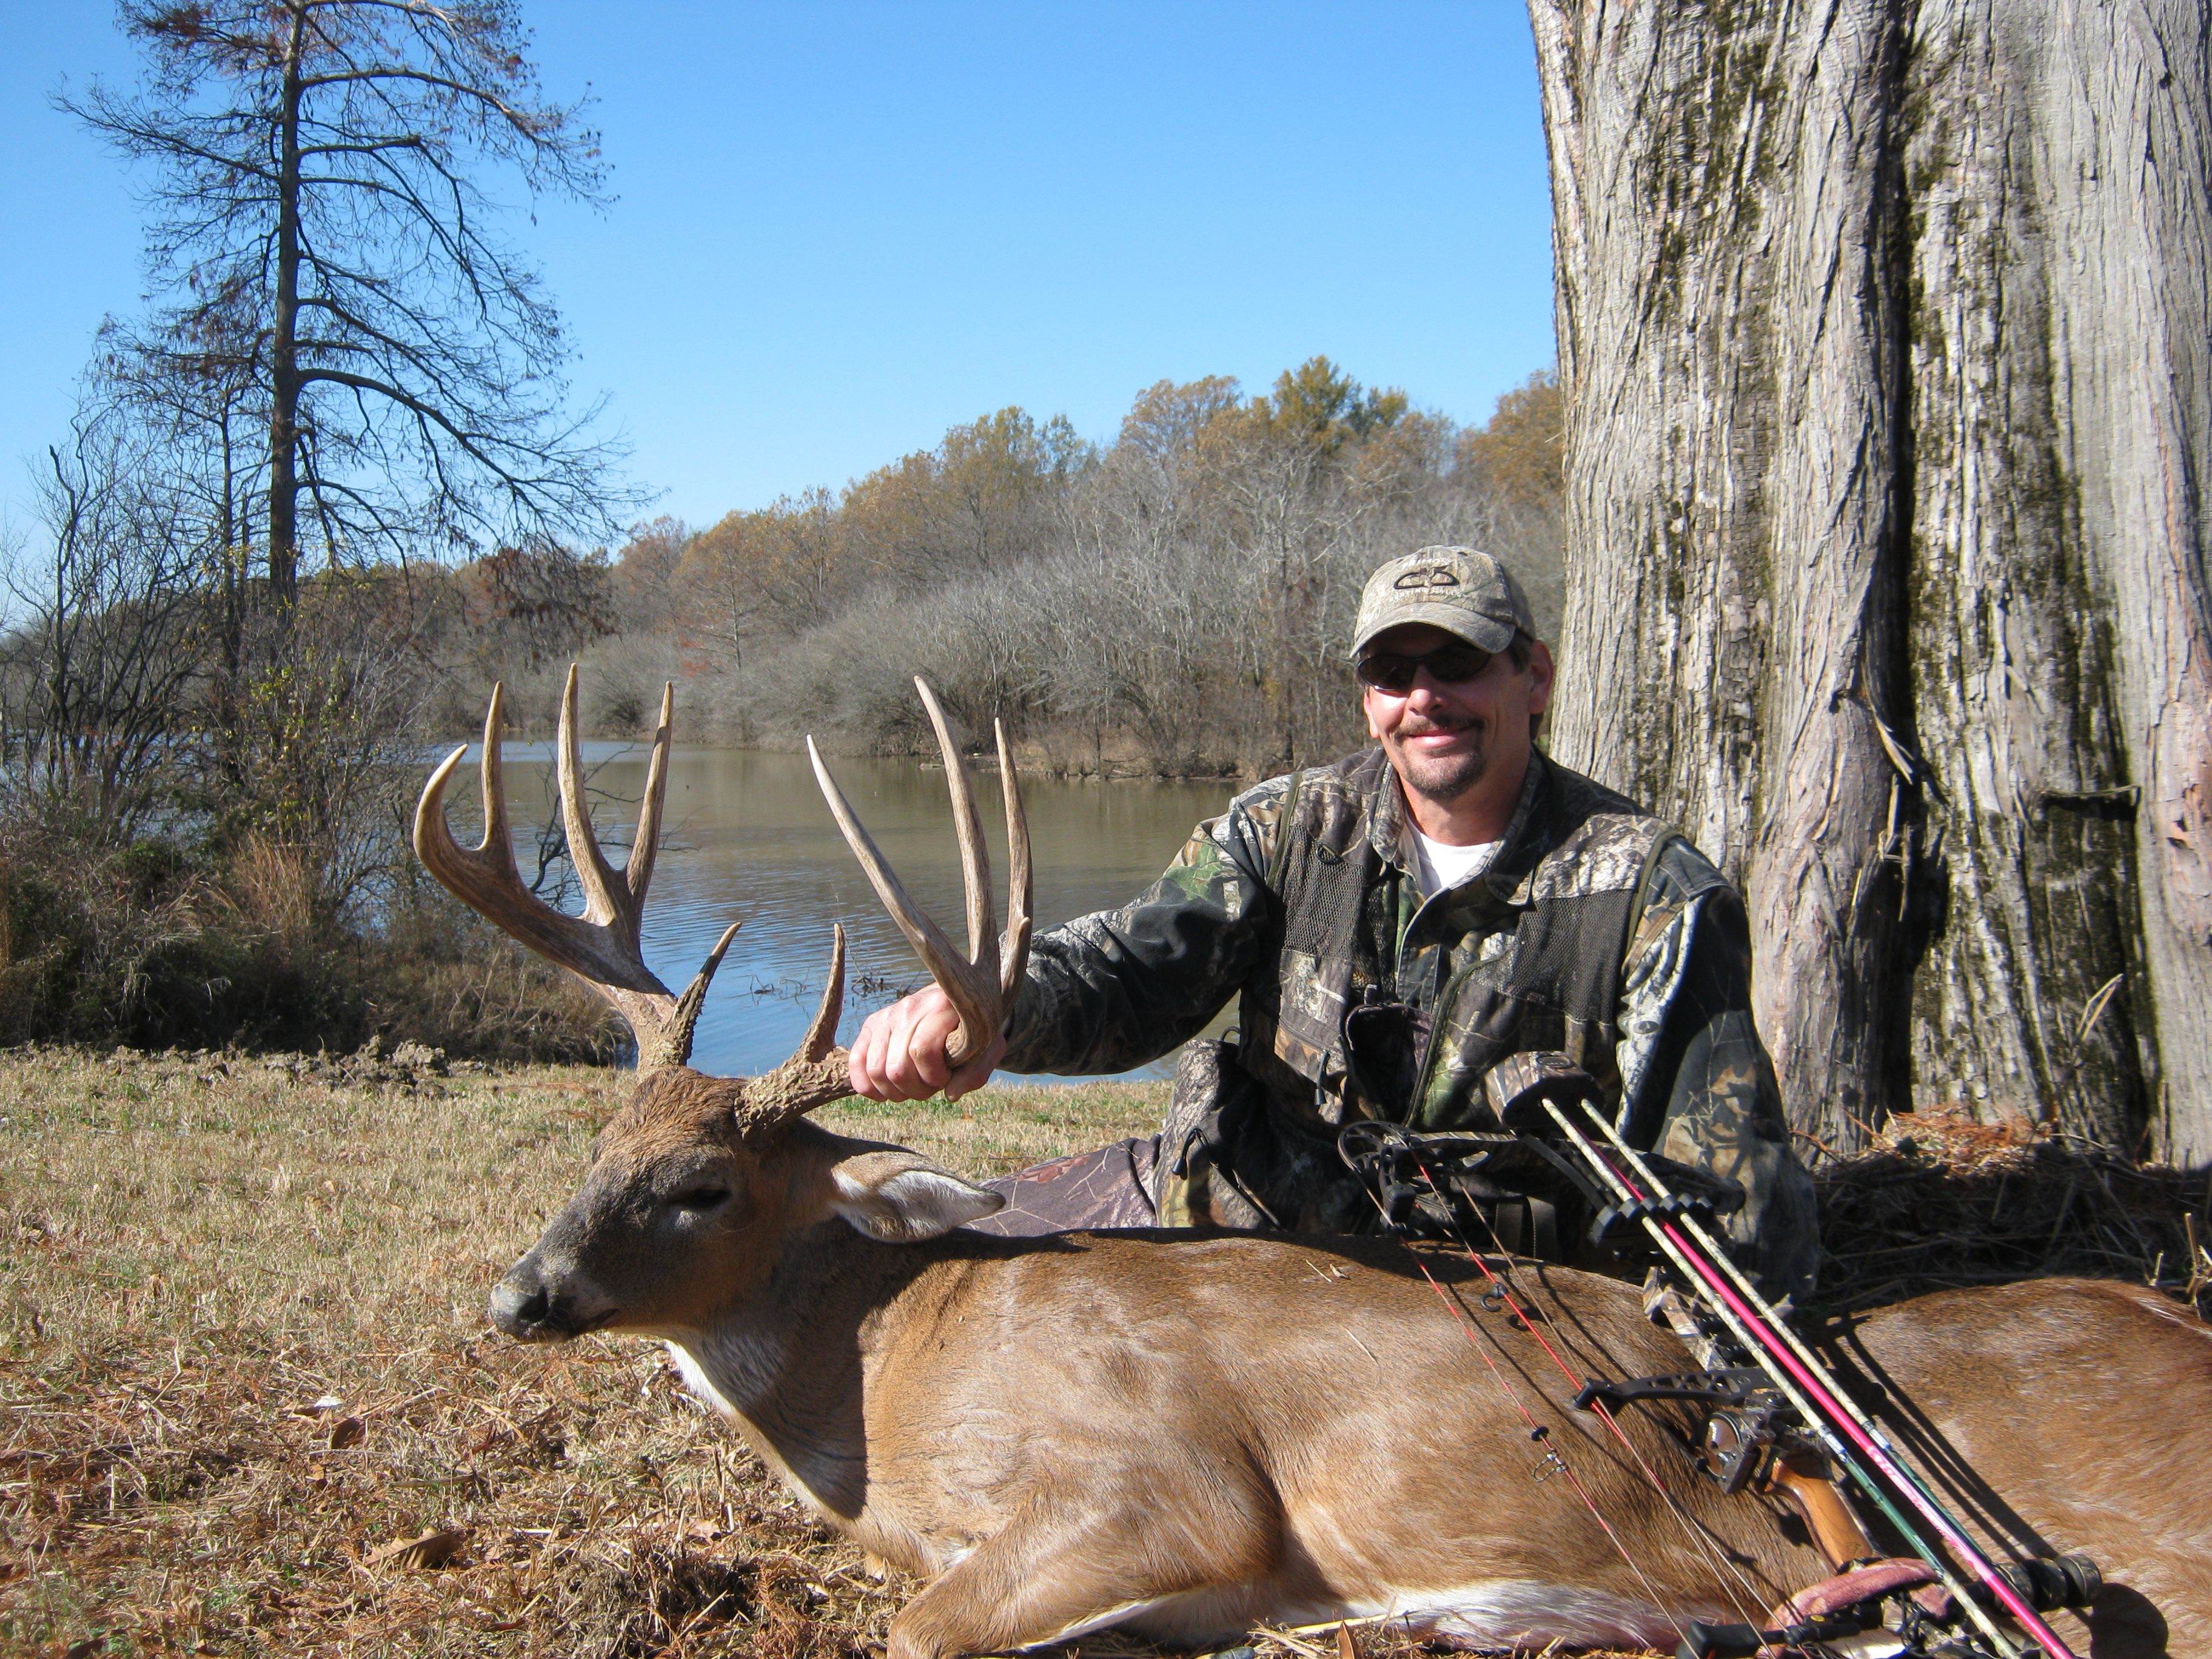 Hunting Prostaffer of the year, Kenny McGeehan from PA, capitalized on his hunt in Mississippi.